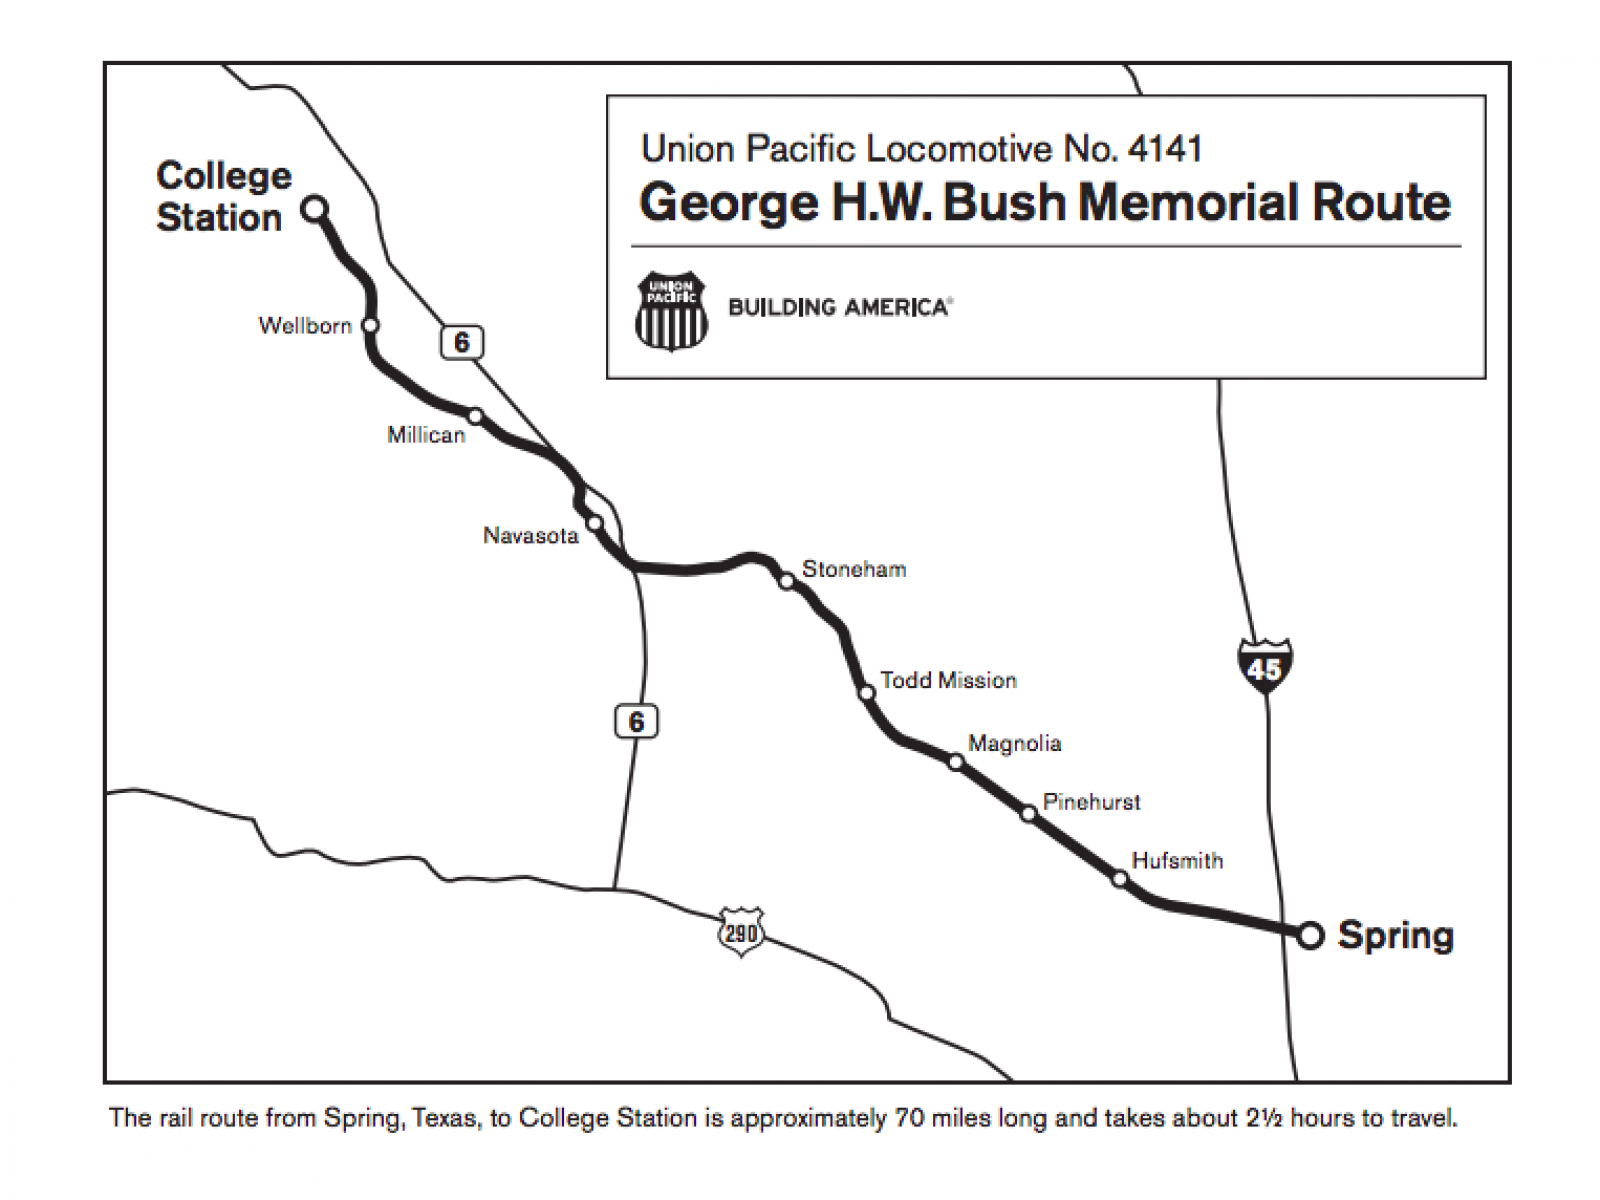 Map Of Texas College Station.George H W Bush Train Houston Funeral Route Map Time Plans To